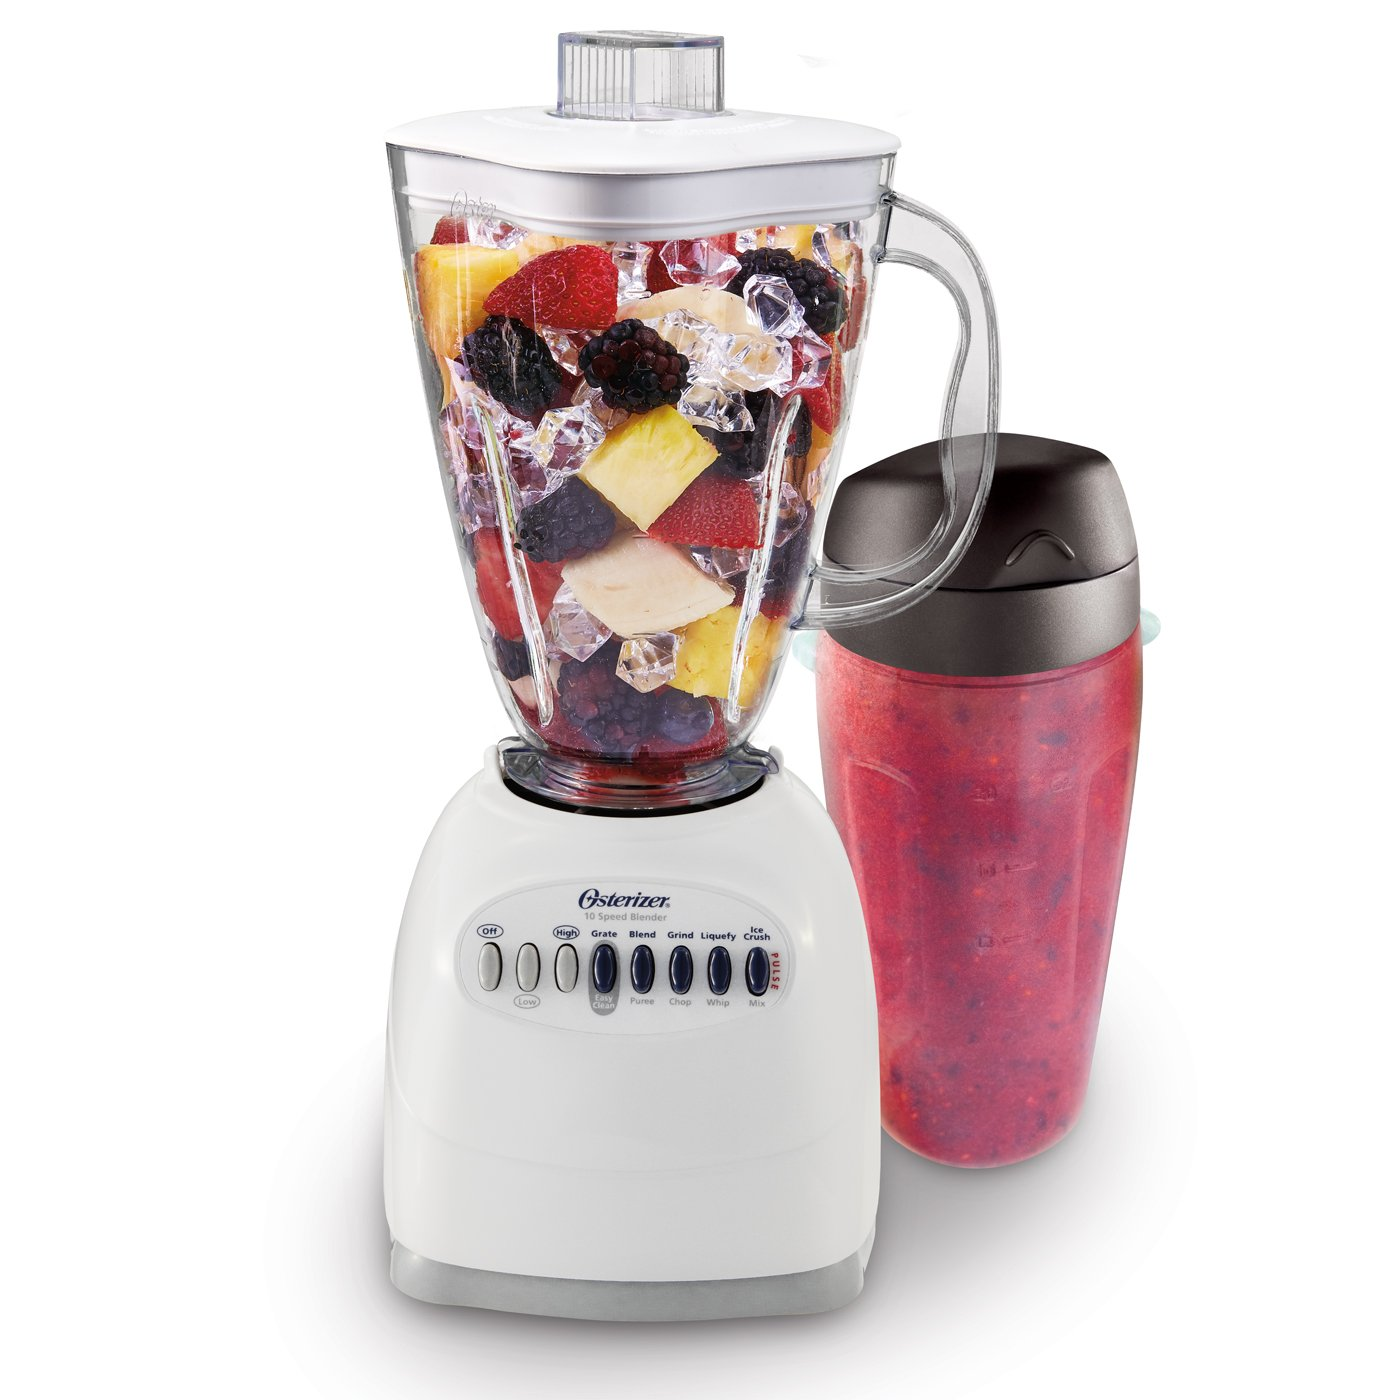 Oster 006640-BG3-N01 Simple Blend 100 10 Speed Blender with Blend and Go Cup, White